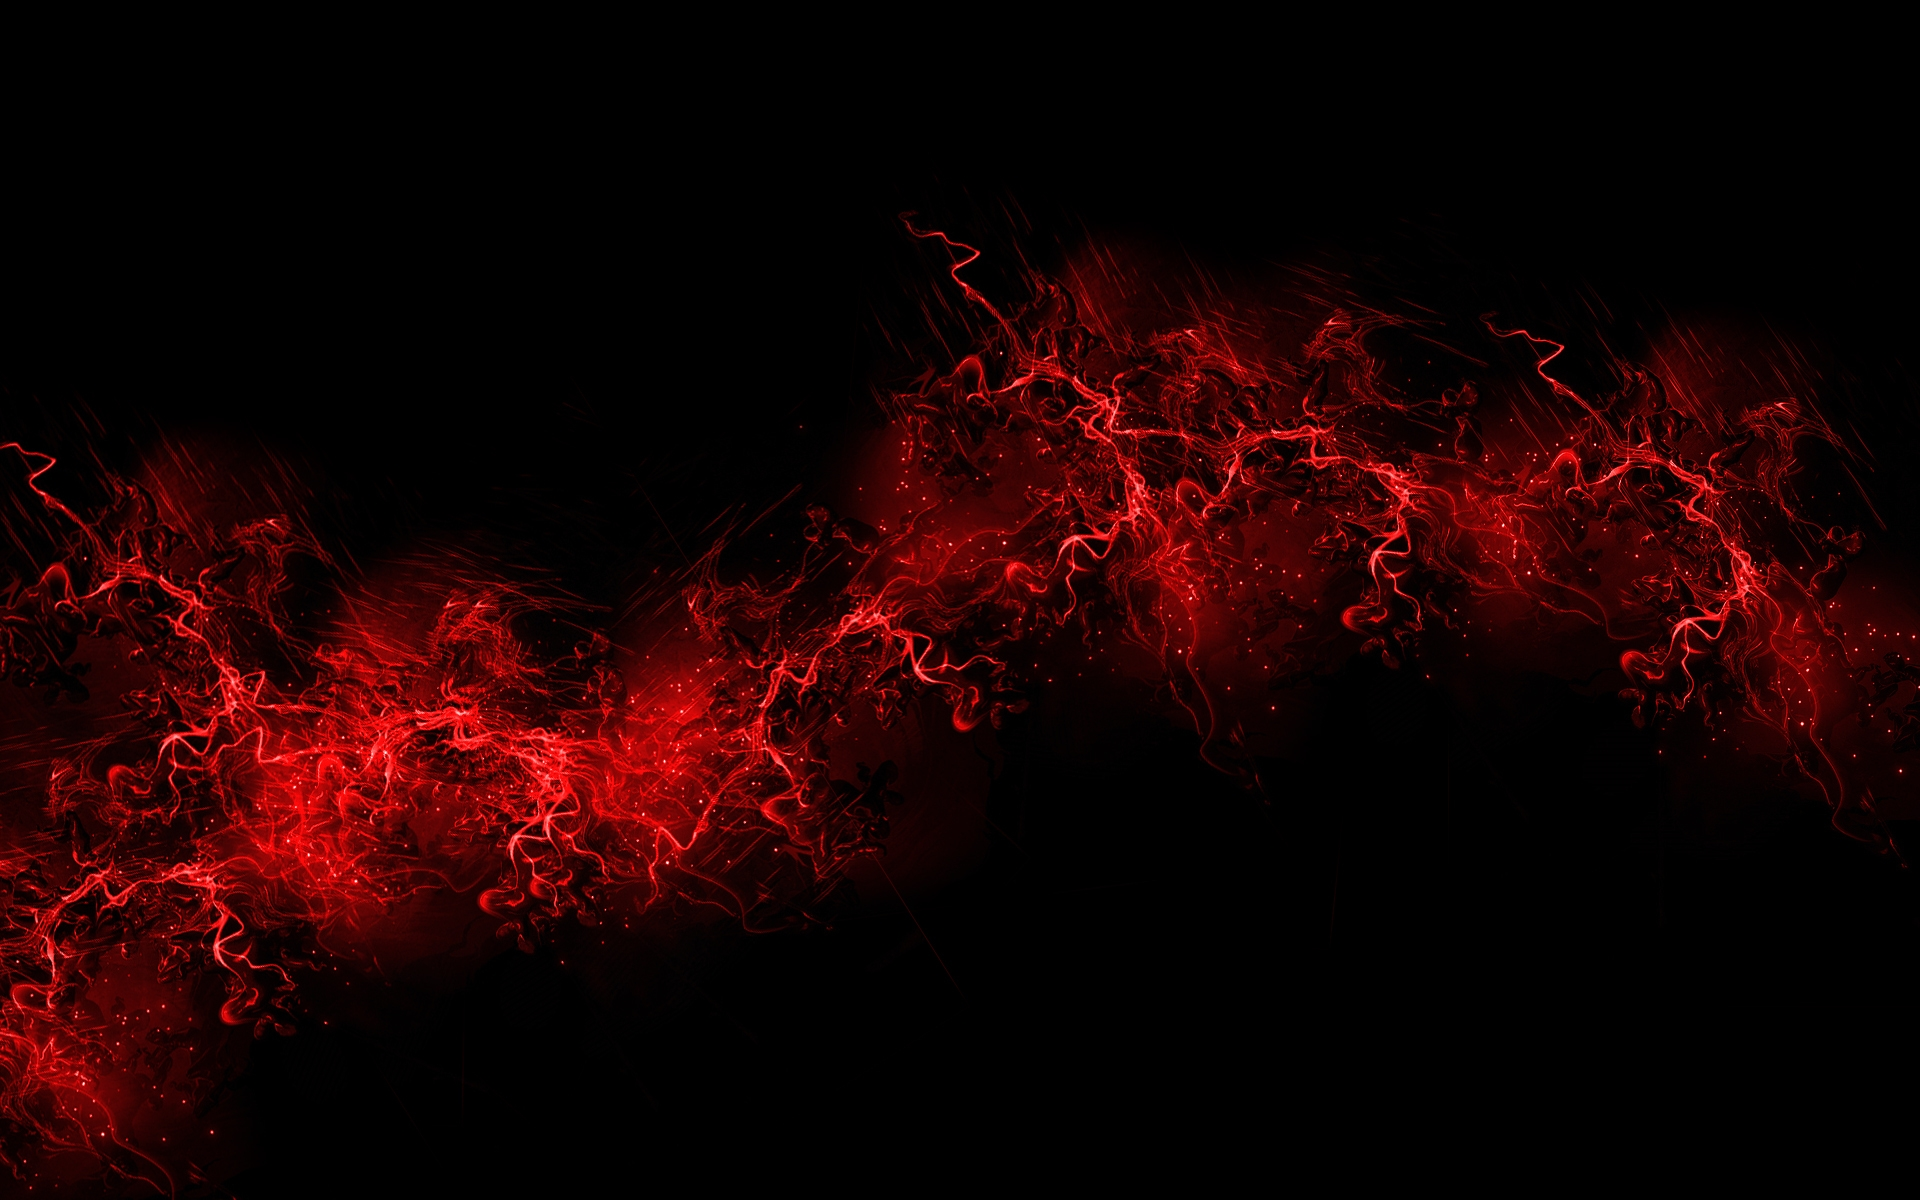 Dark Blood Wallpaper 30 Hd Red Wallpapers